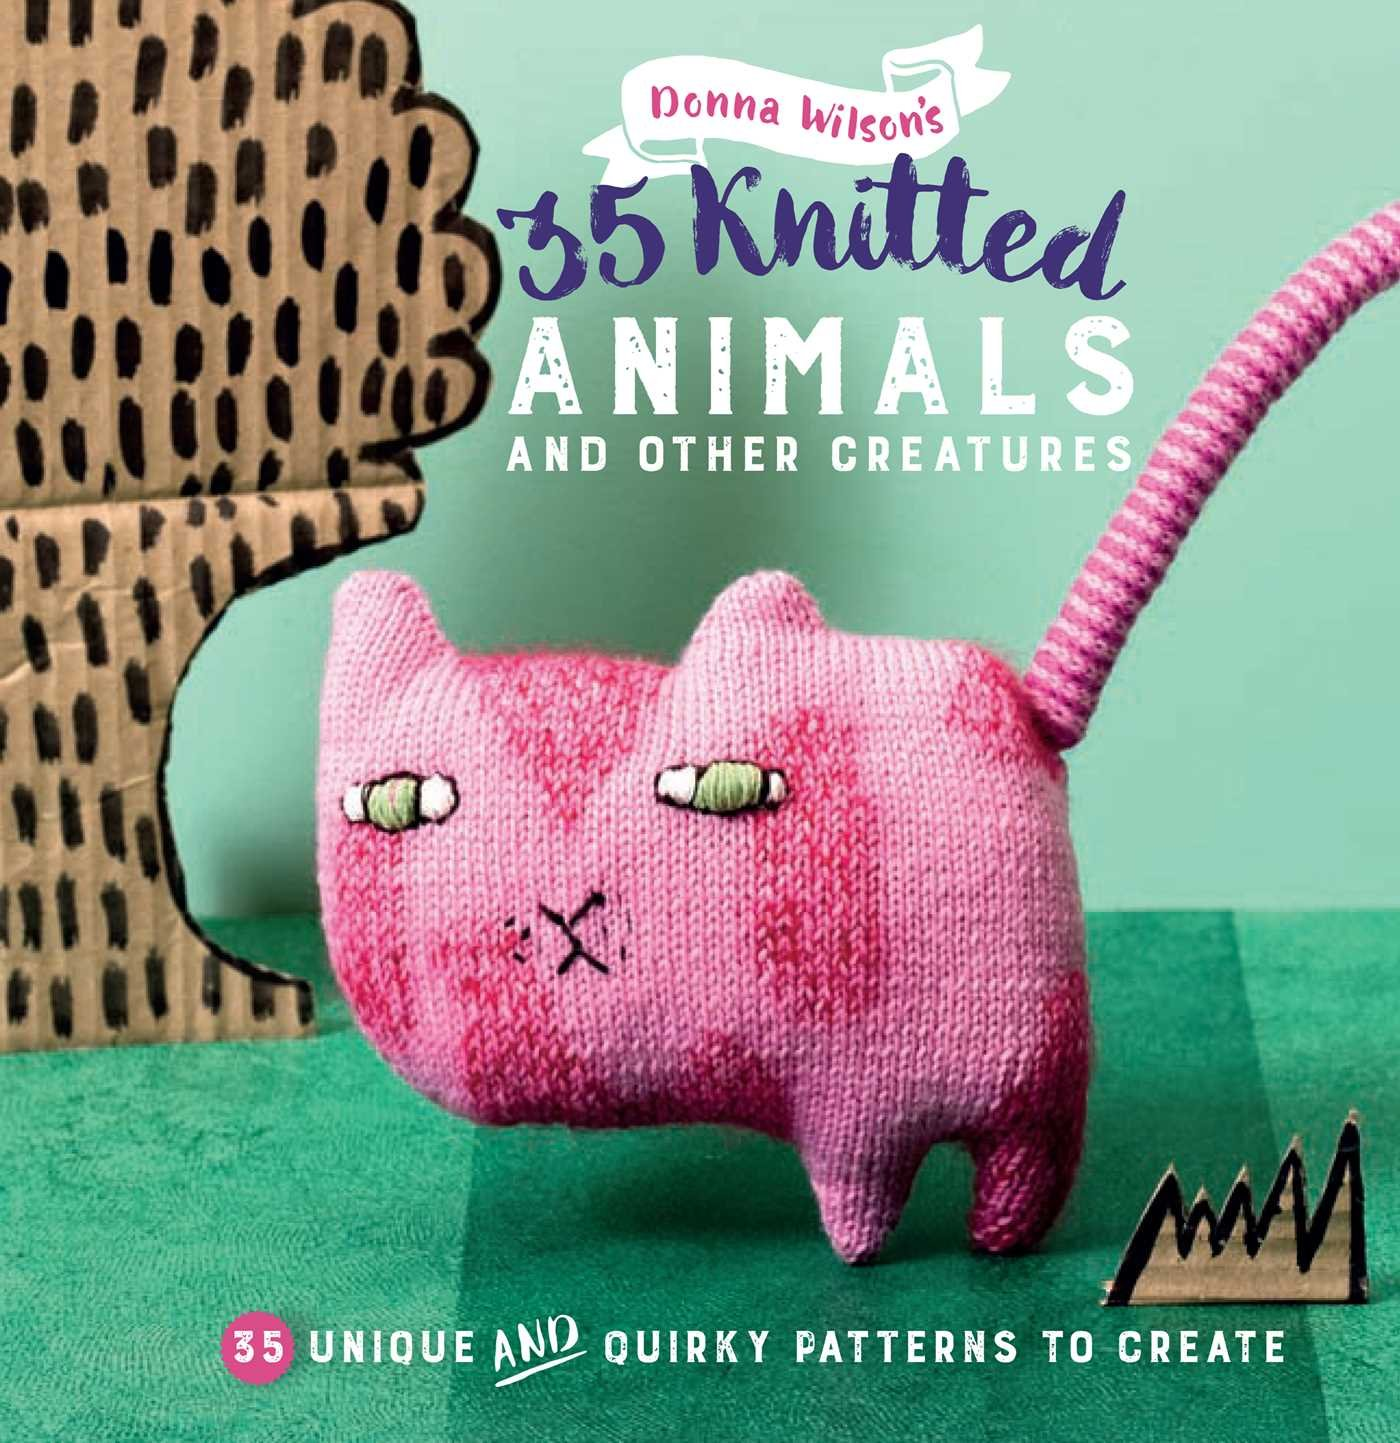 35 Knitted Animals and other creatures: 35 unique and quirky patterns to create ebook